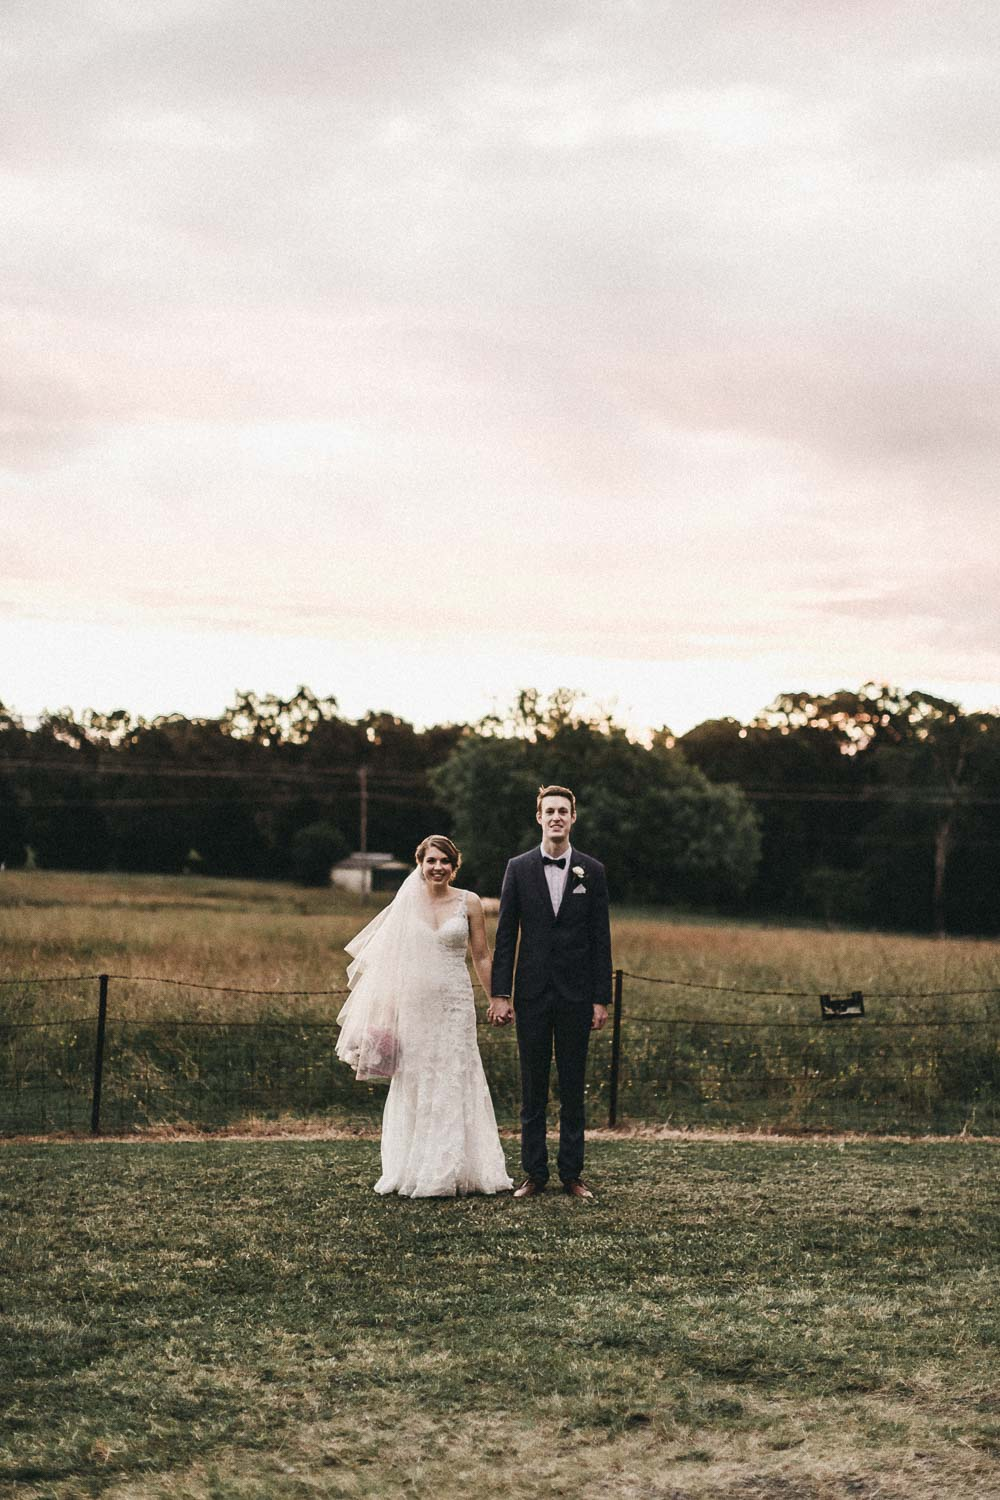 Sydney Wedding Photography | Wazza Studio 63.jpg